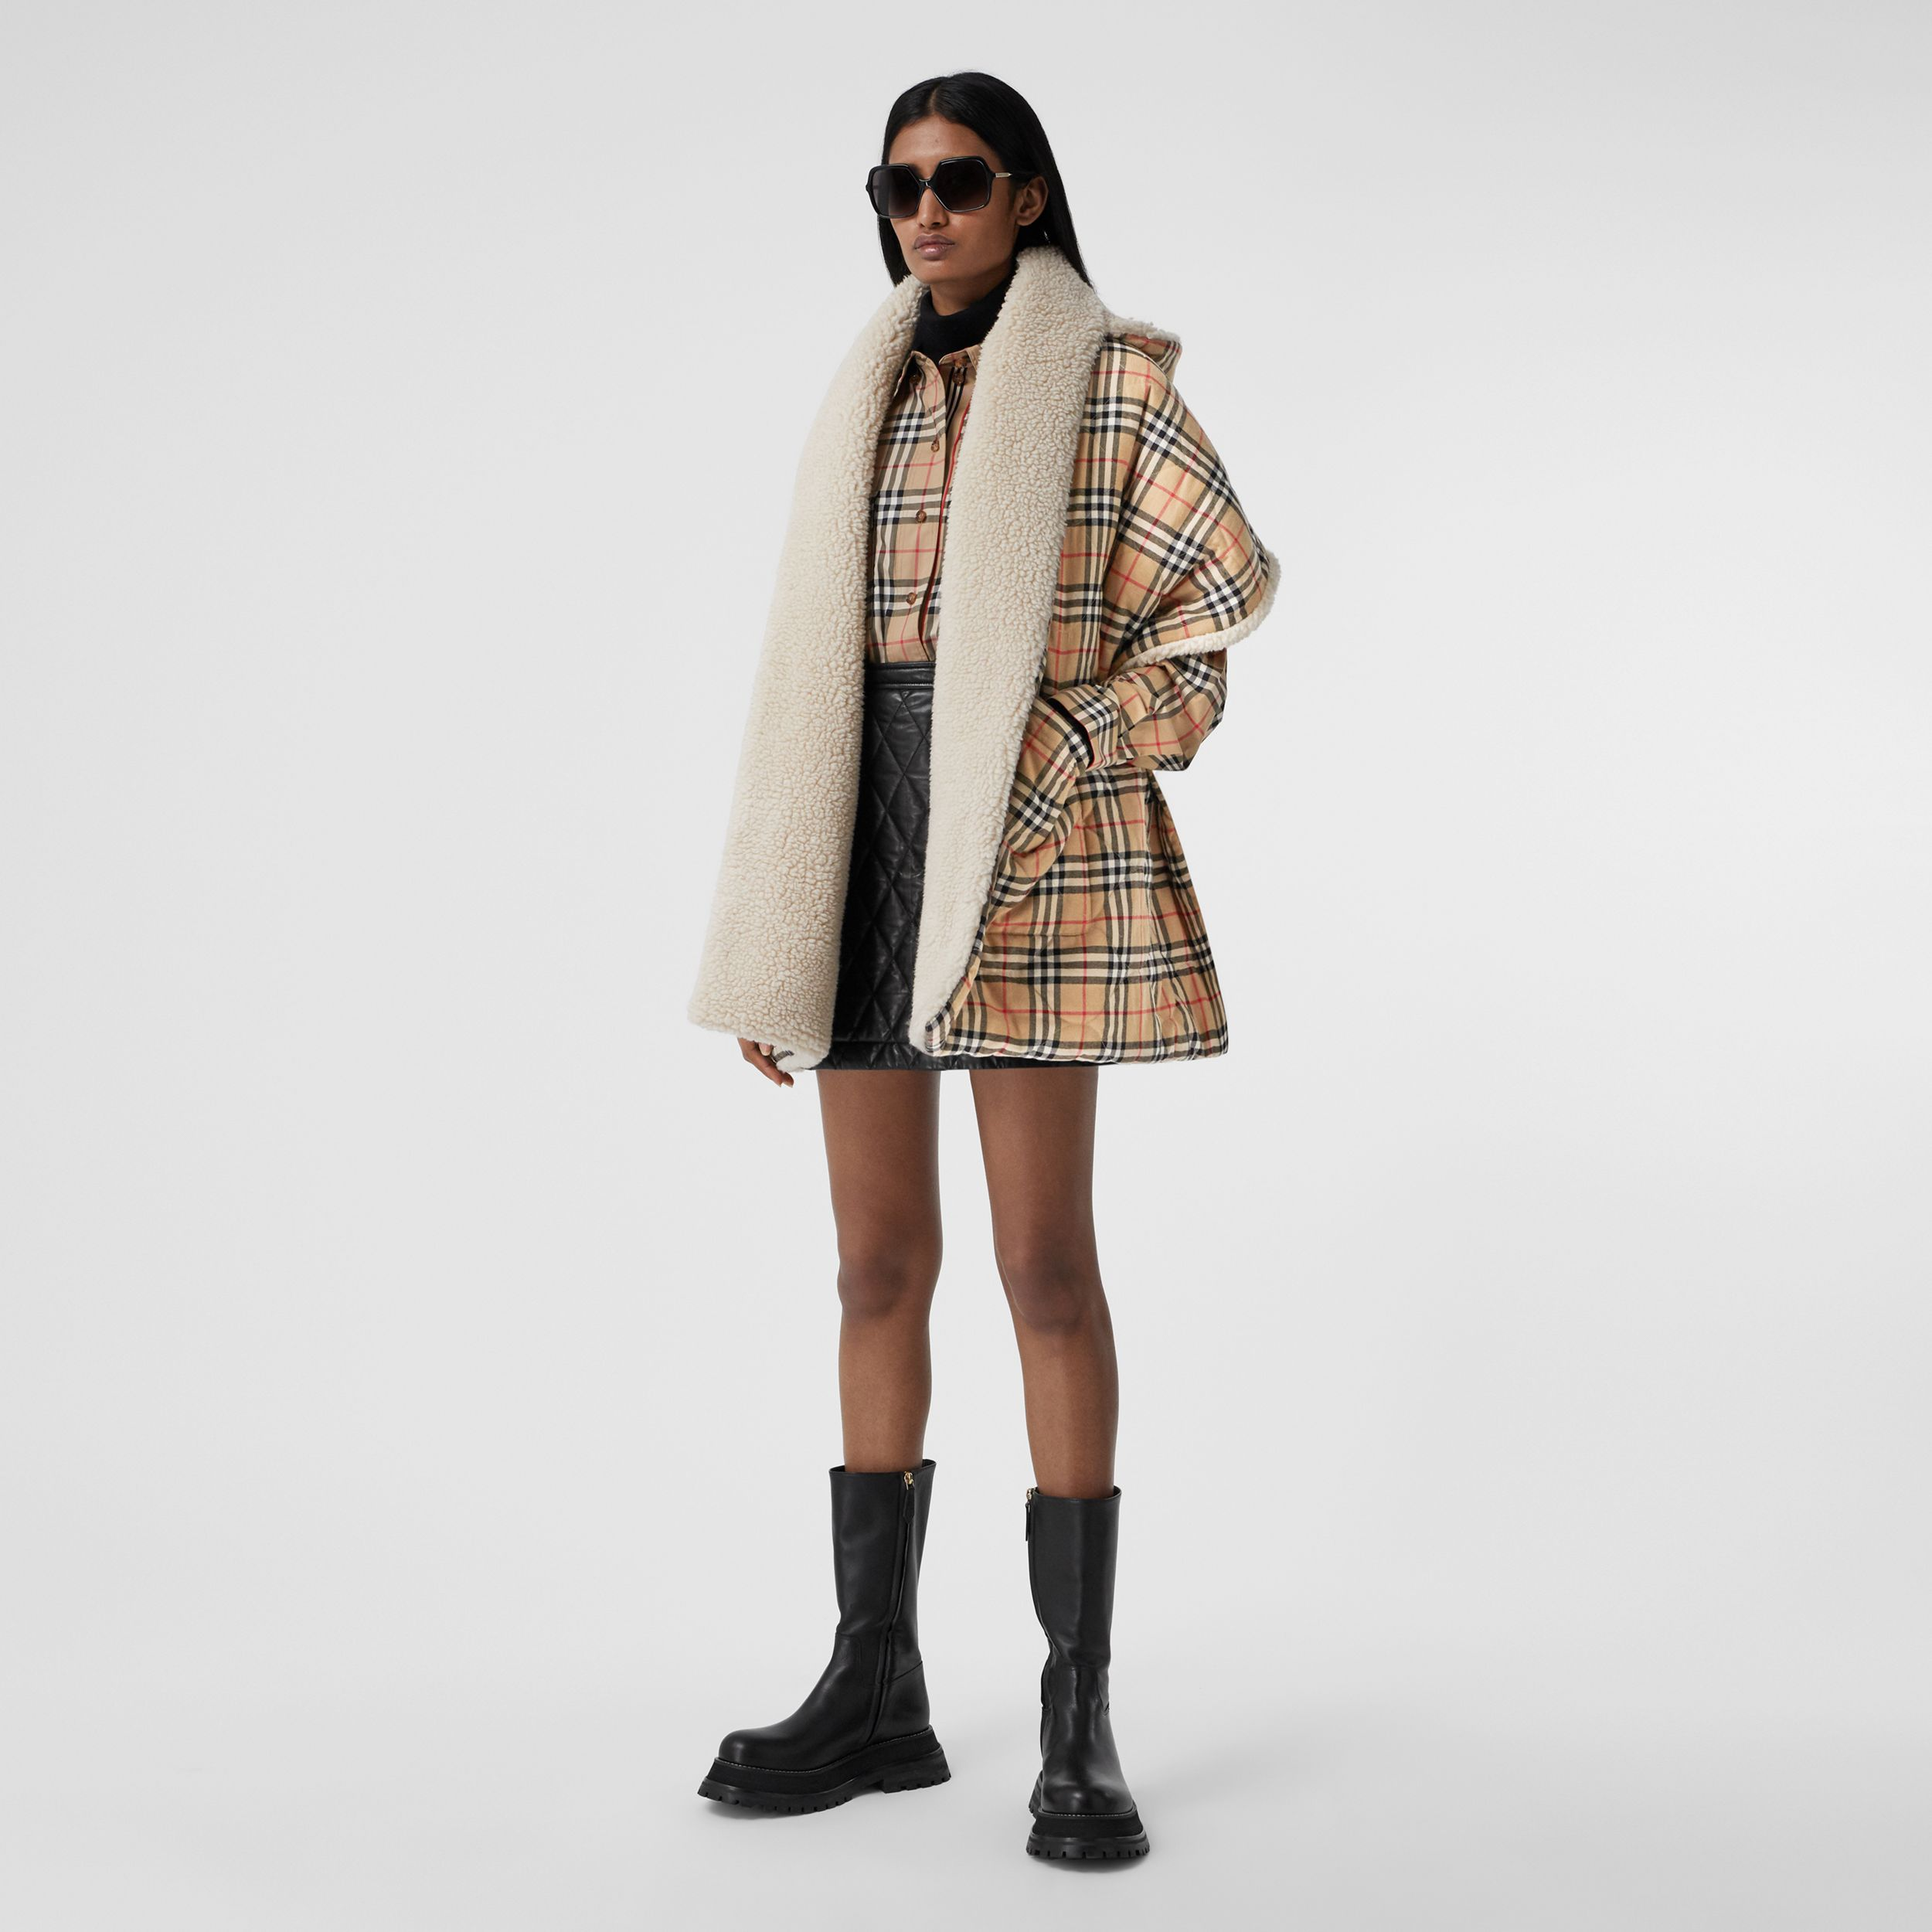 Fleece-lined Vintage Check Cotton Hooded Cape in Camel - Women | Burberry United States - 1